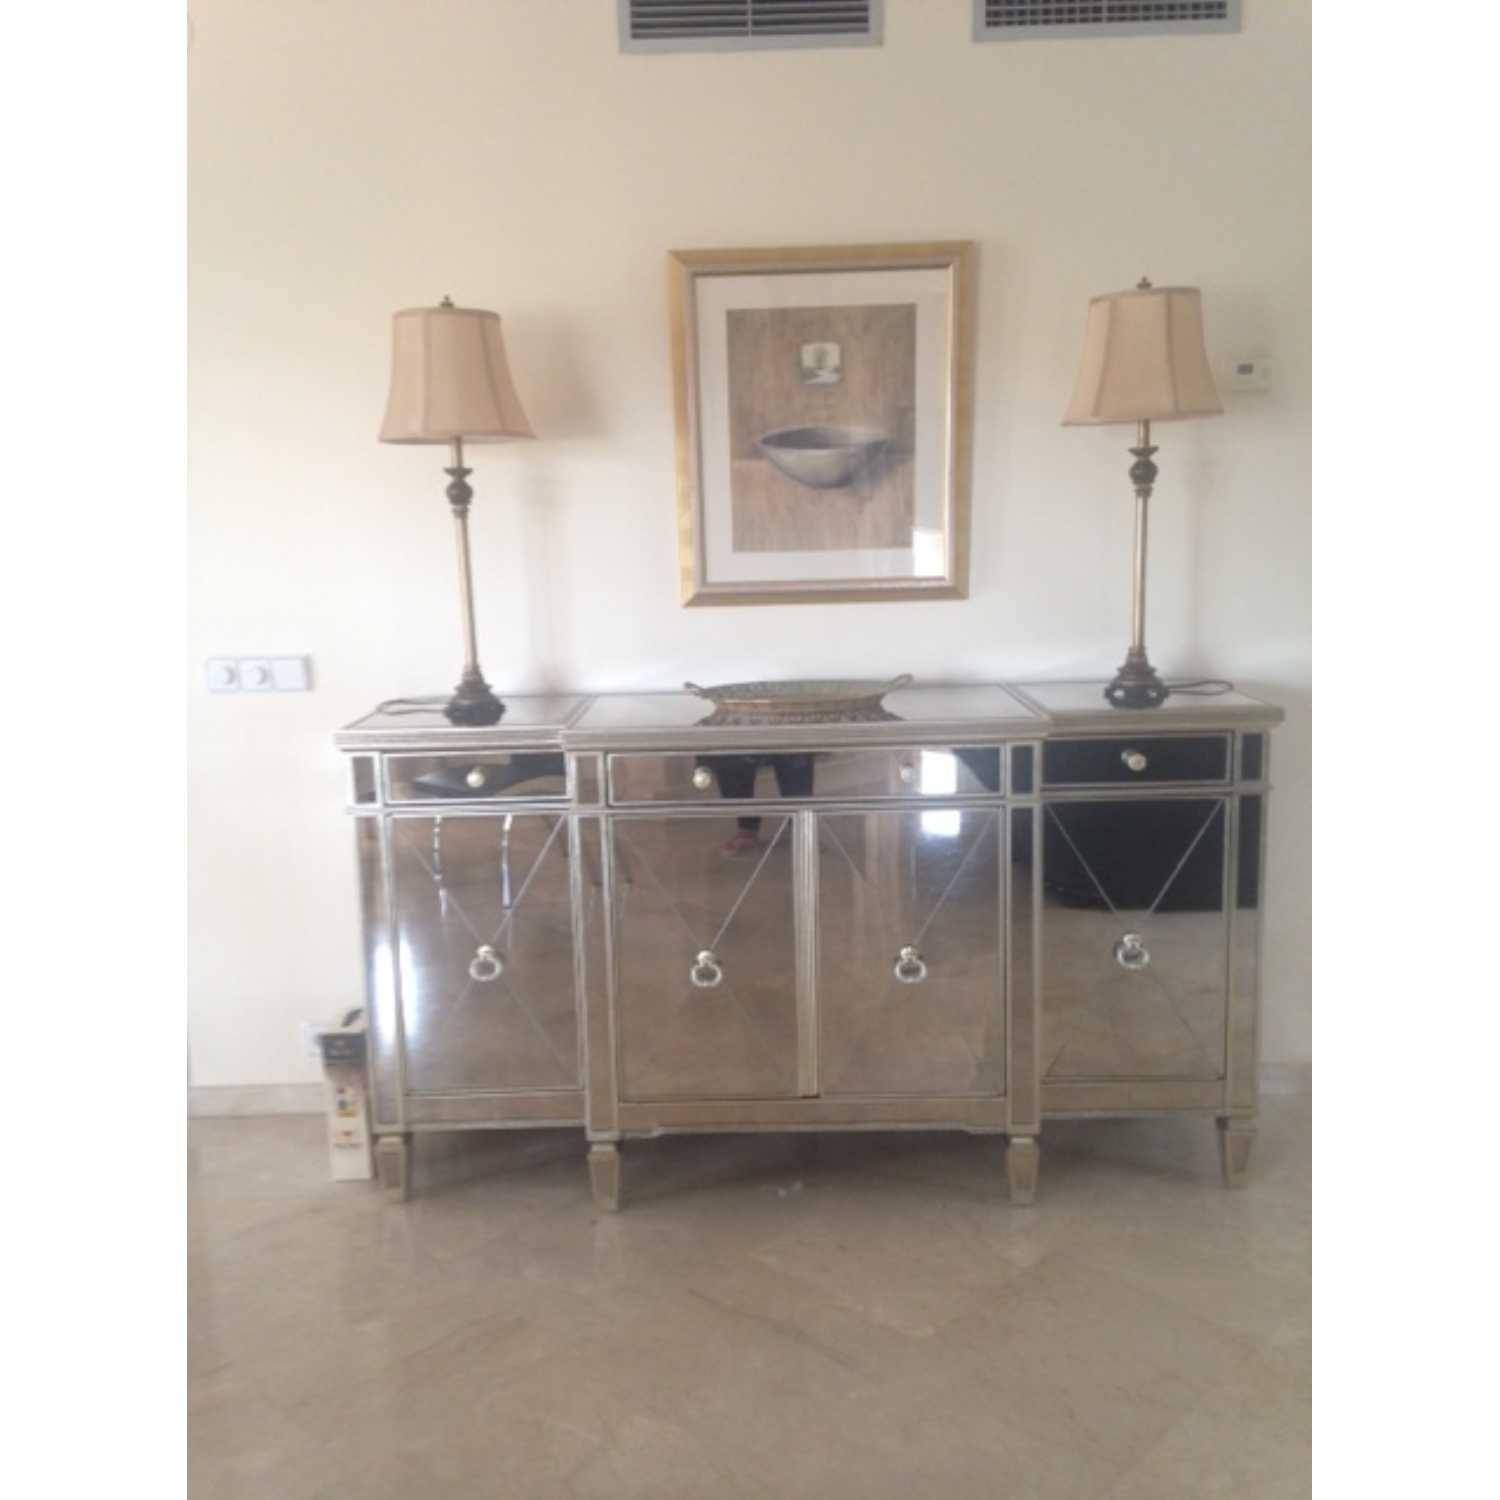 Large Antique Seville Venetian Mirrored Glass Sideboard 4 Door Intended For Small Mirrored Sideboards (View 8 of 15)